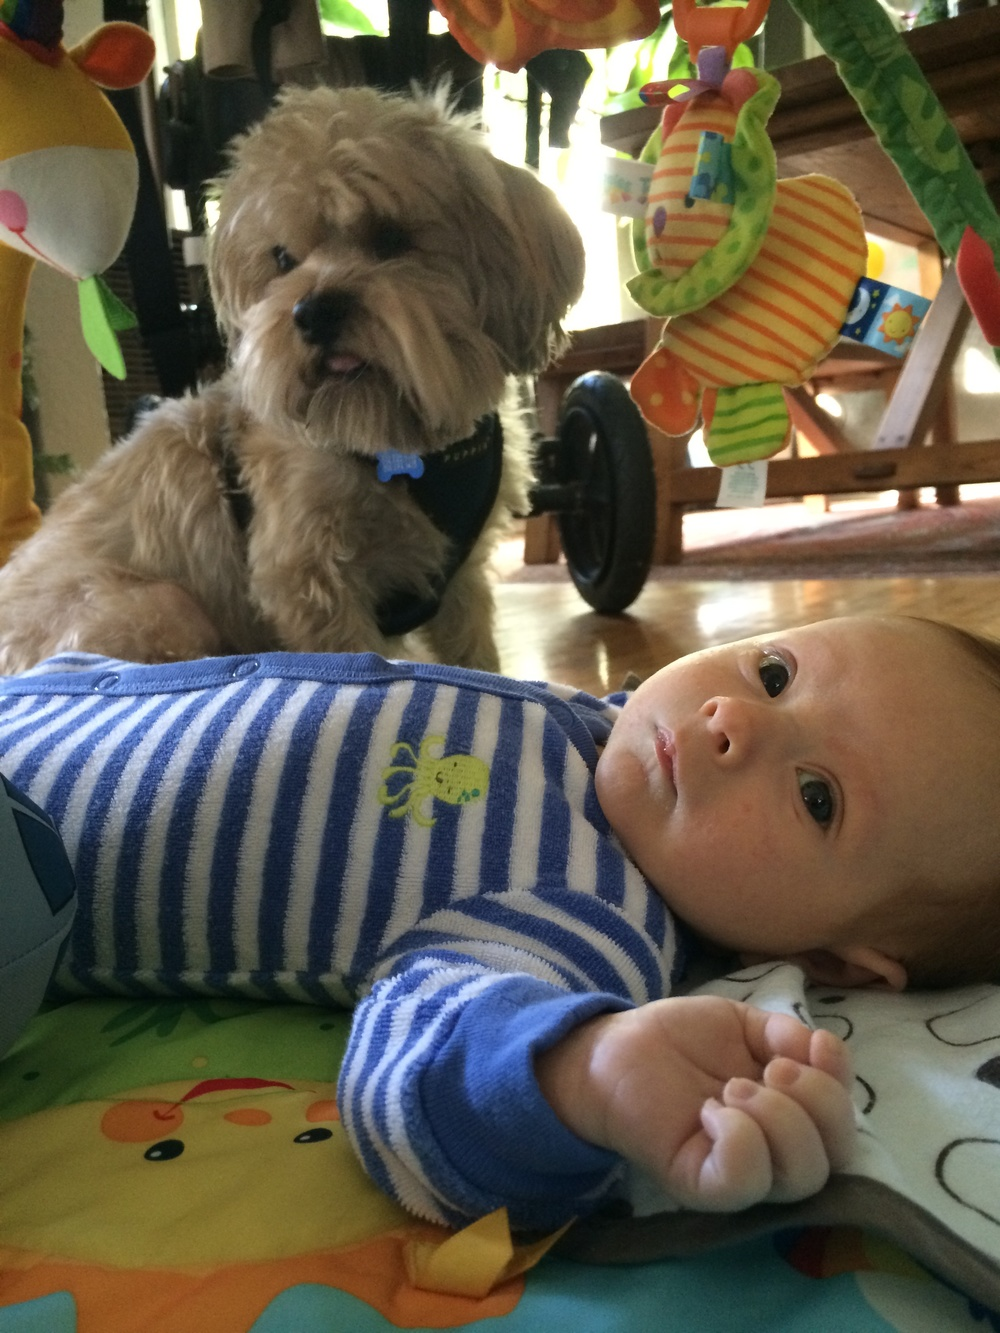 Henry is good company on the play mat